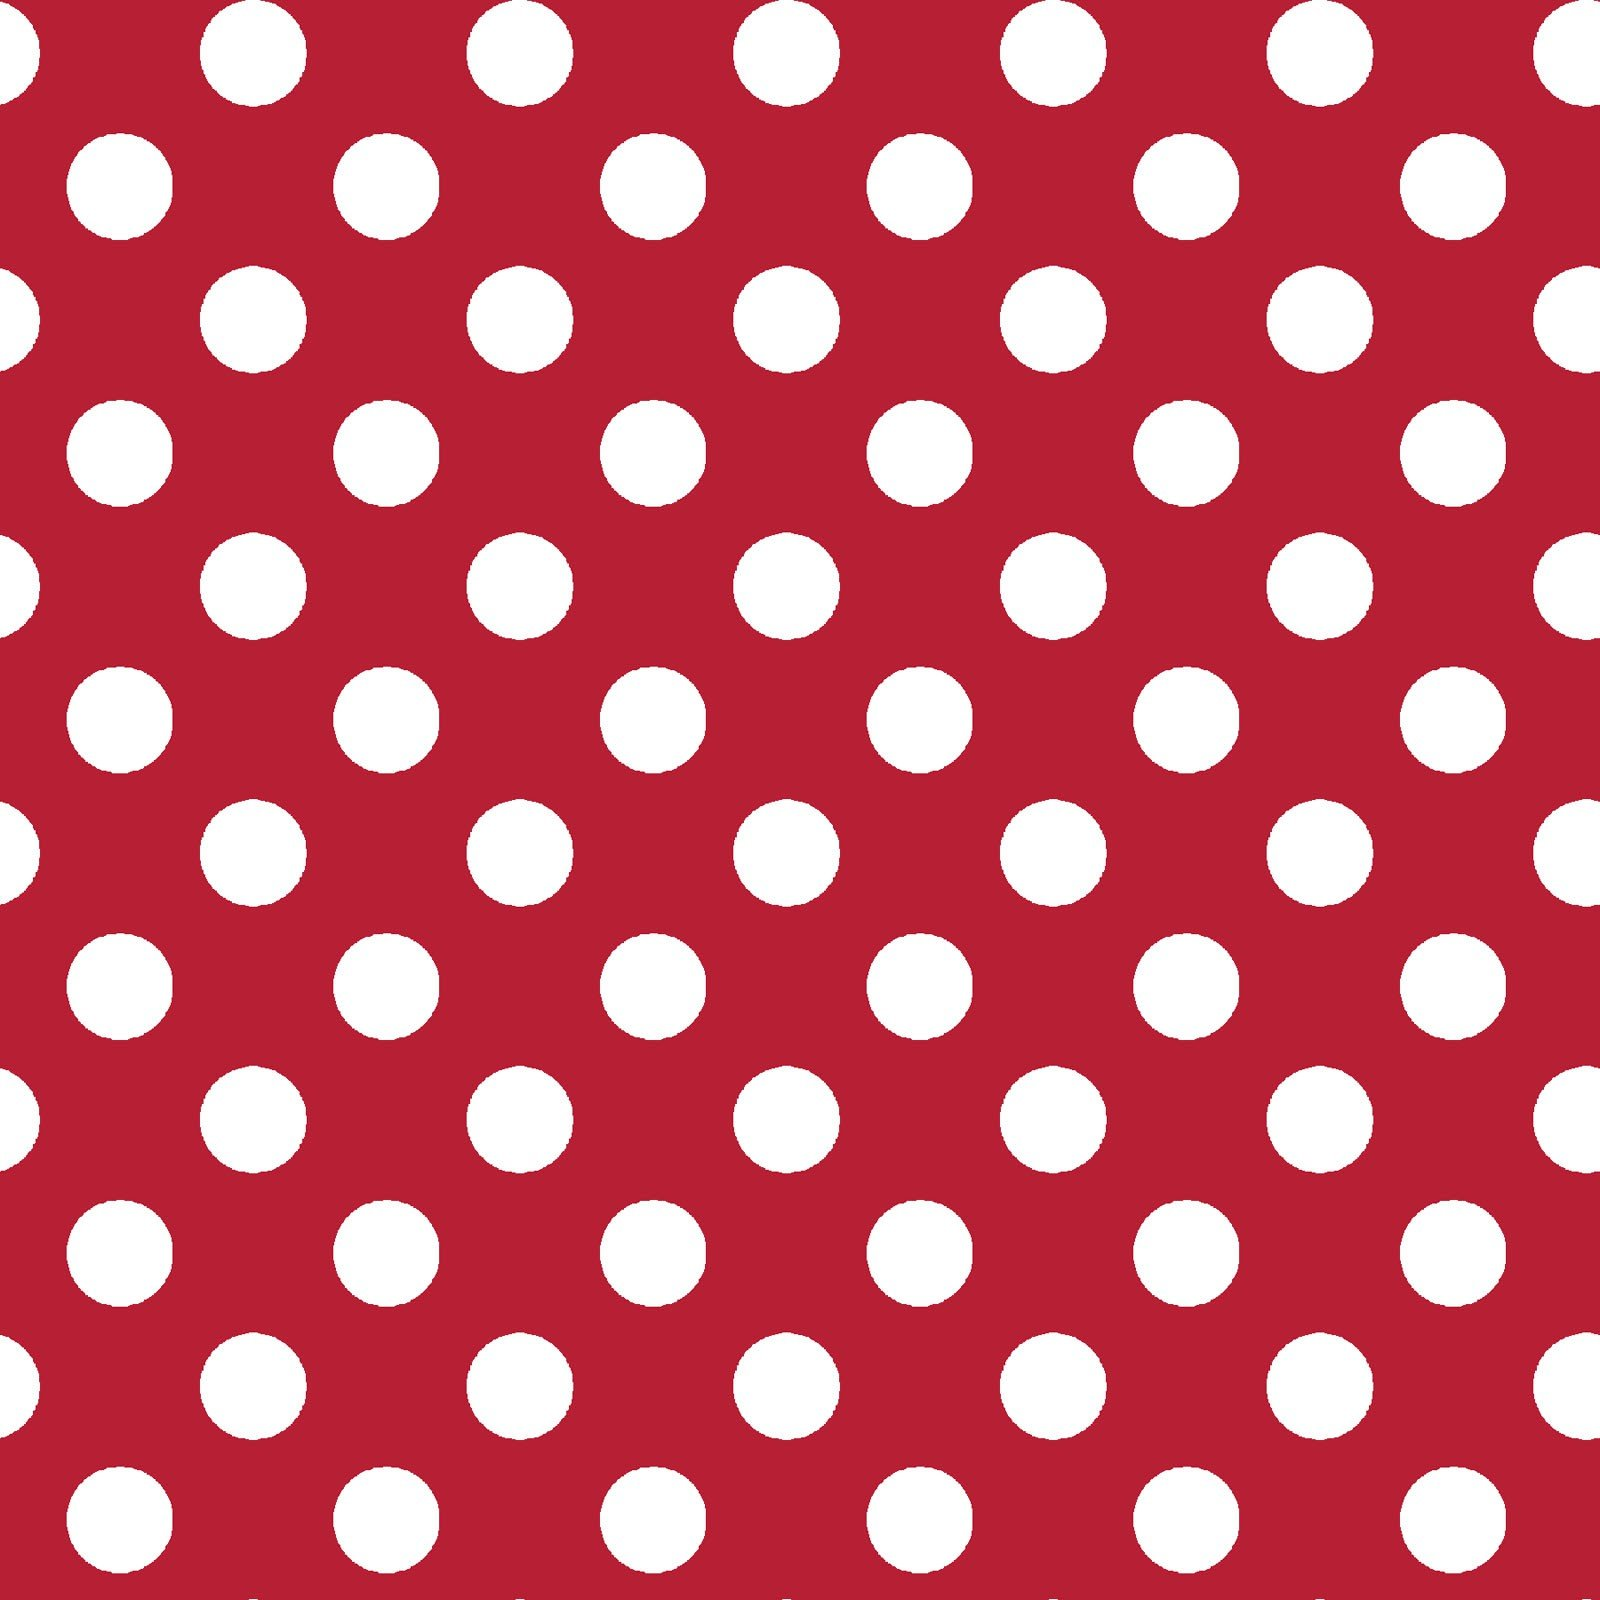 Dots by KimberBell - Red